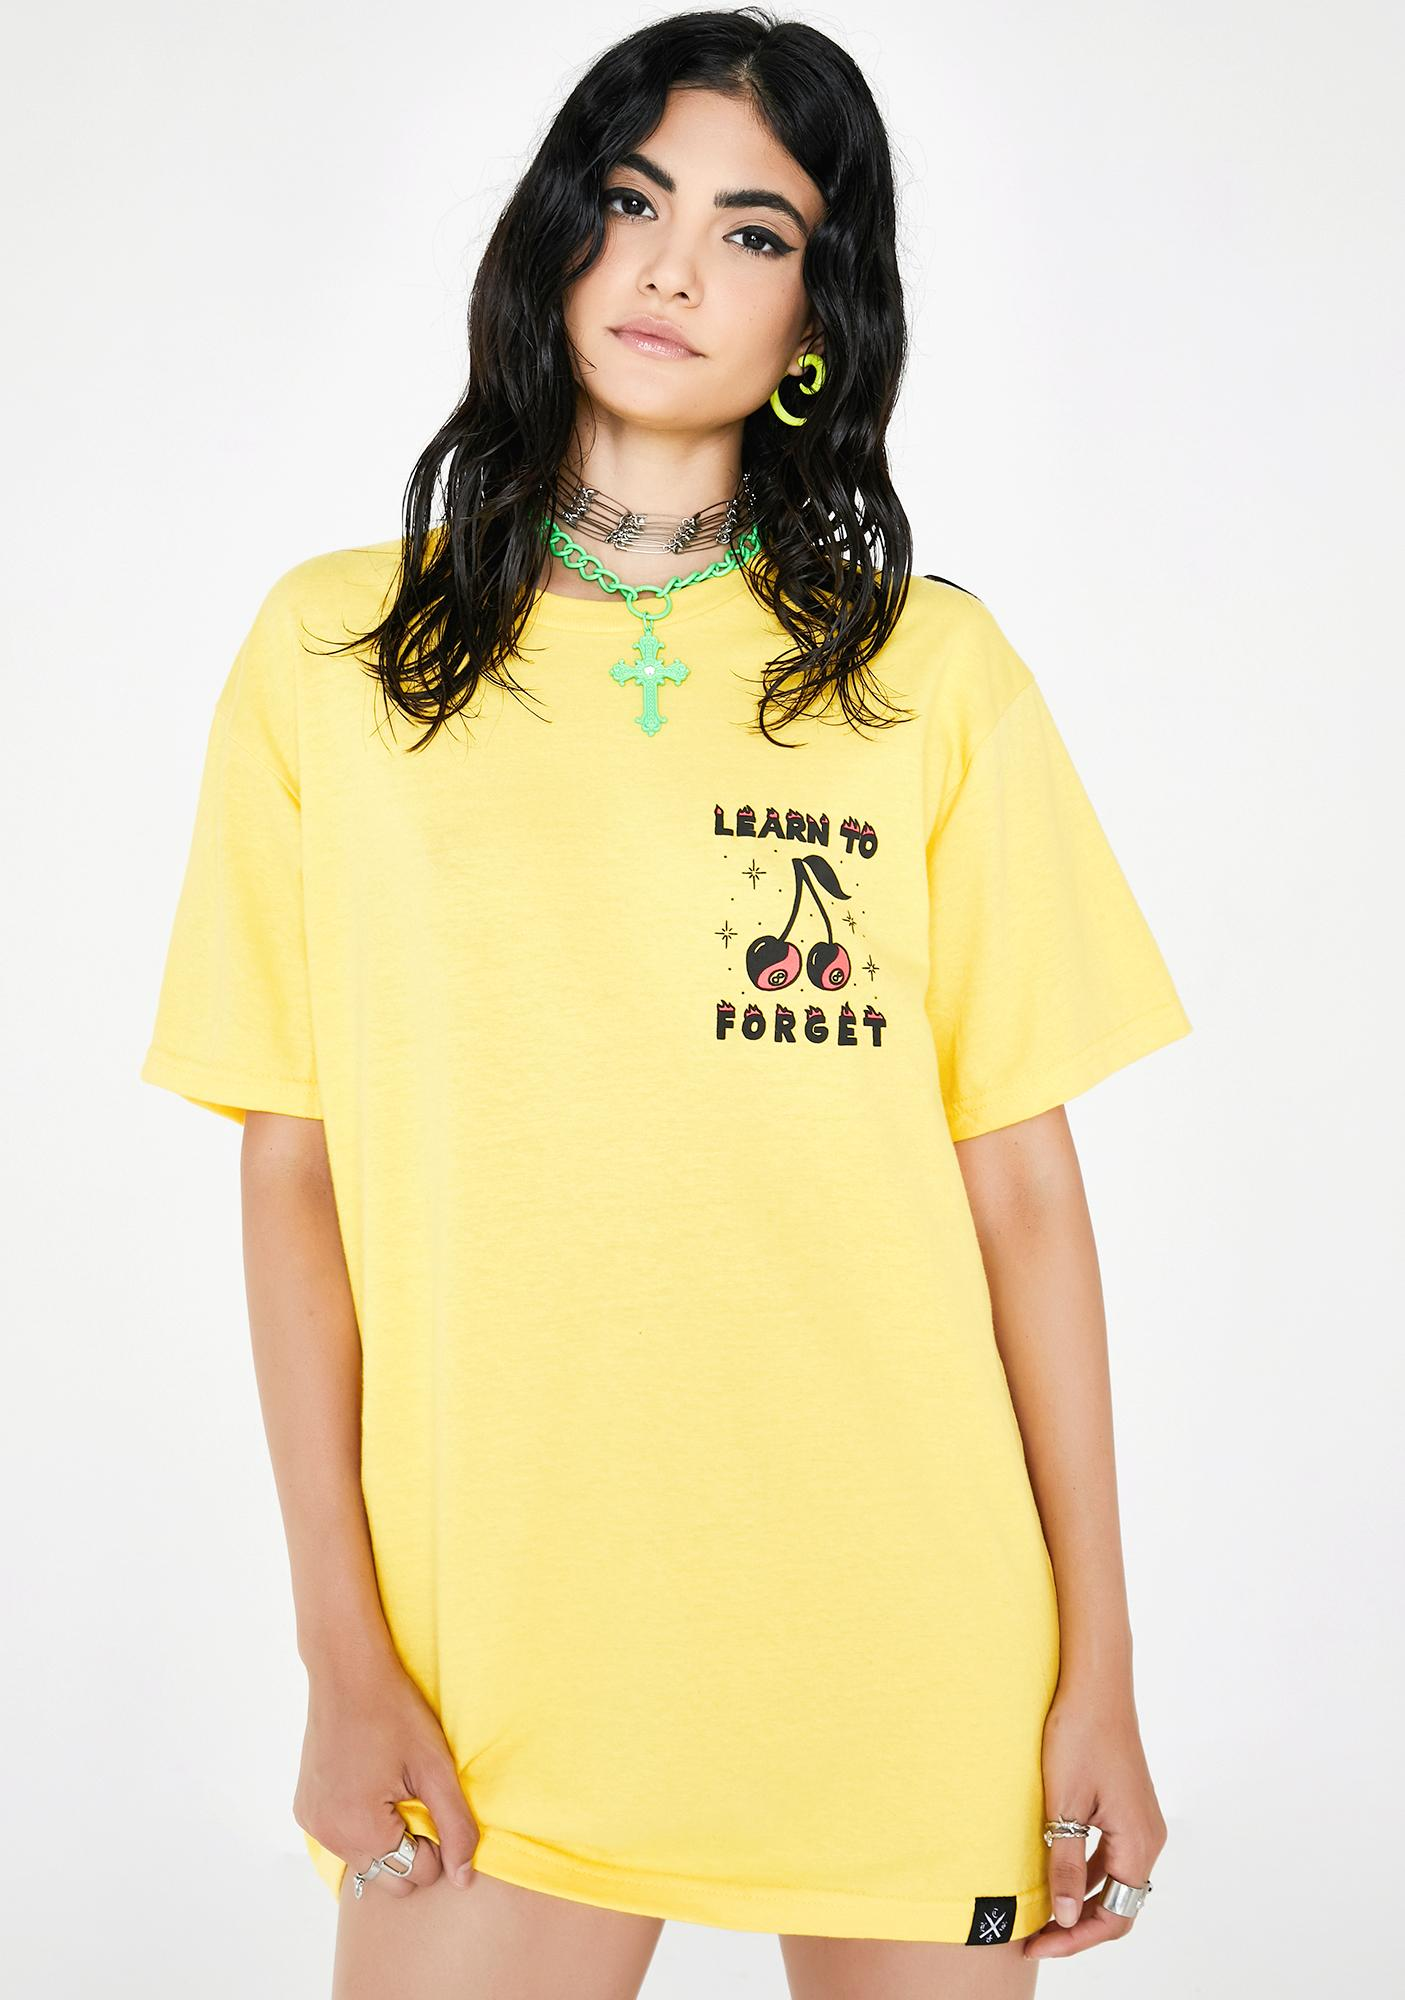 Learn To Forget Cherry 8-Ball Graphic Tee